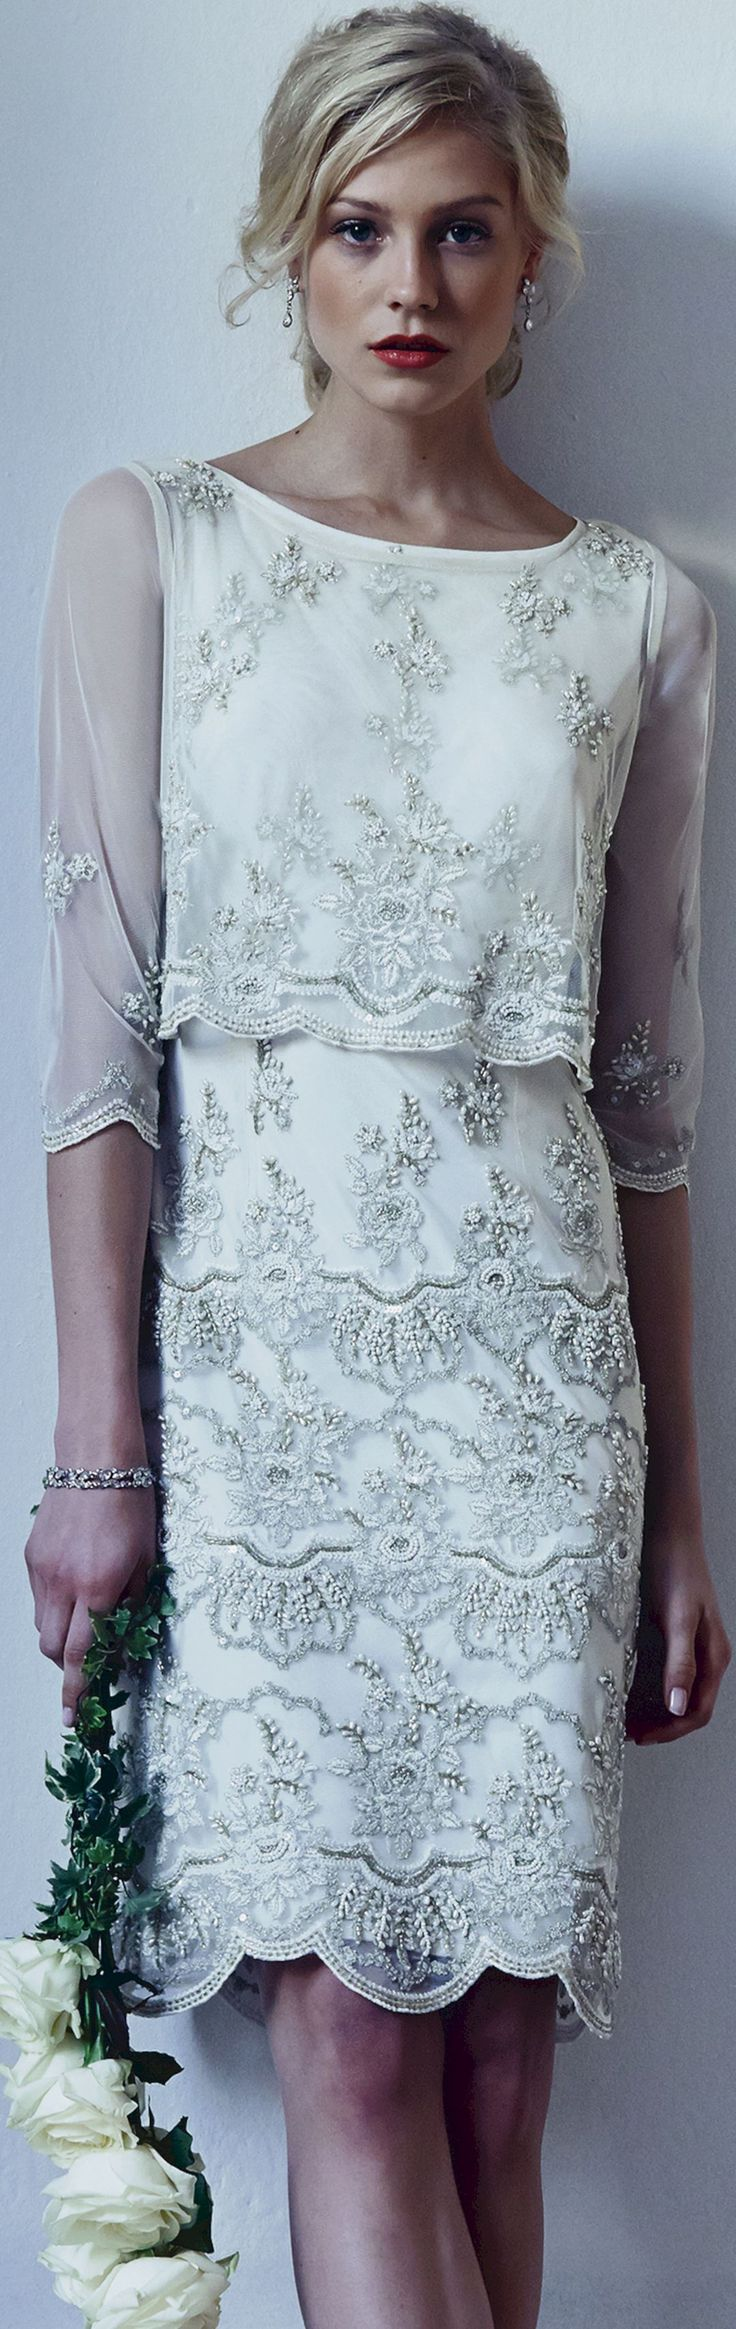 241 best Mother of the groom images on Pinterest | Mob dresses ...